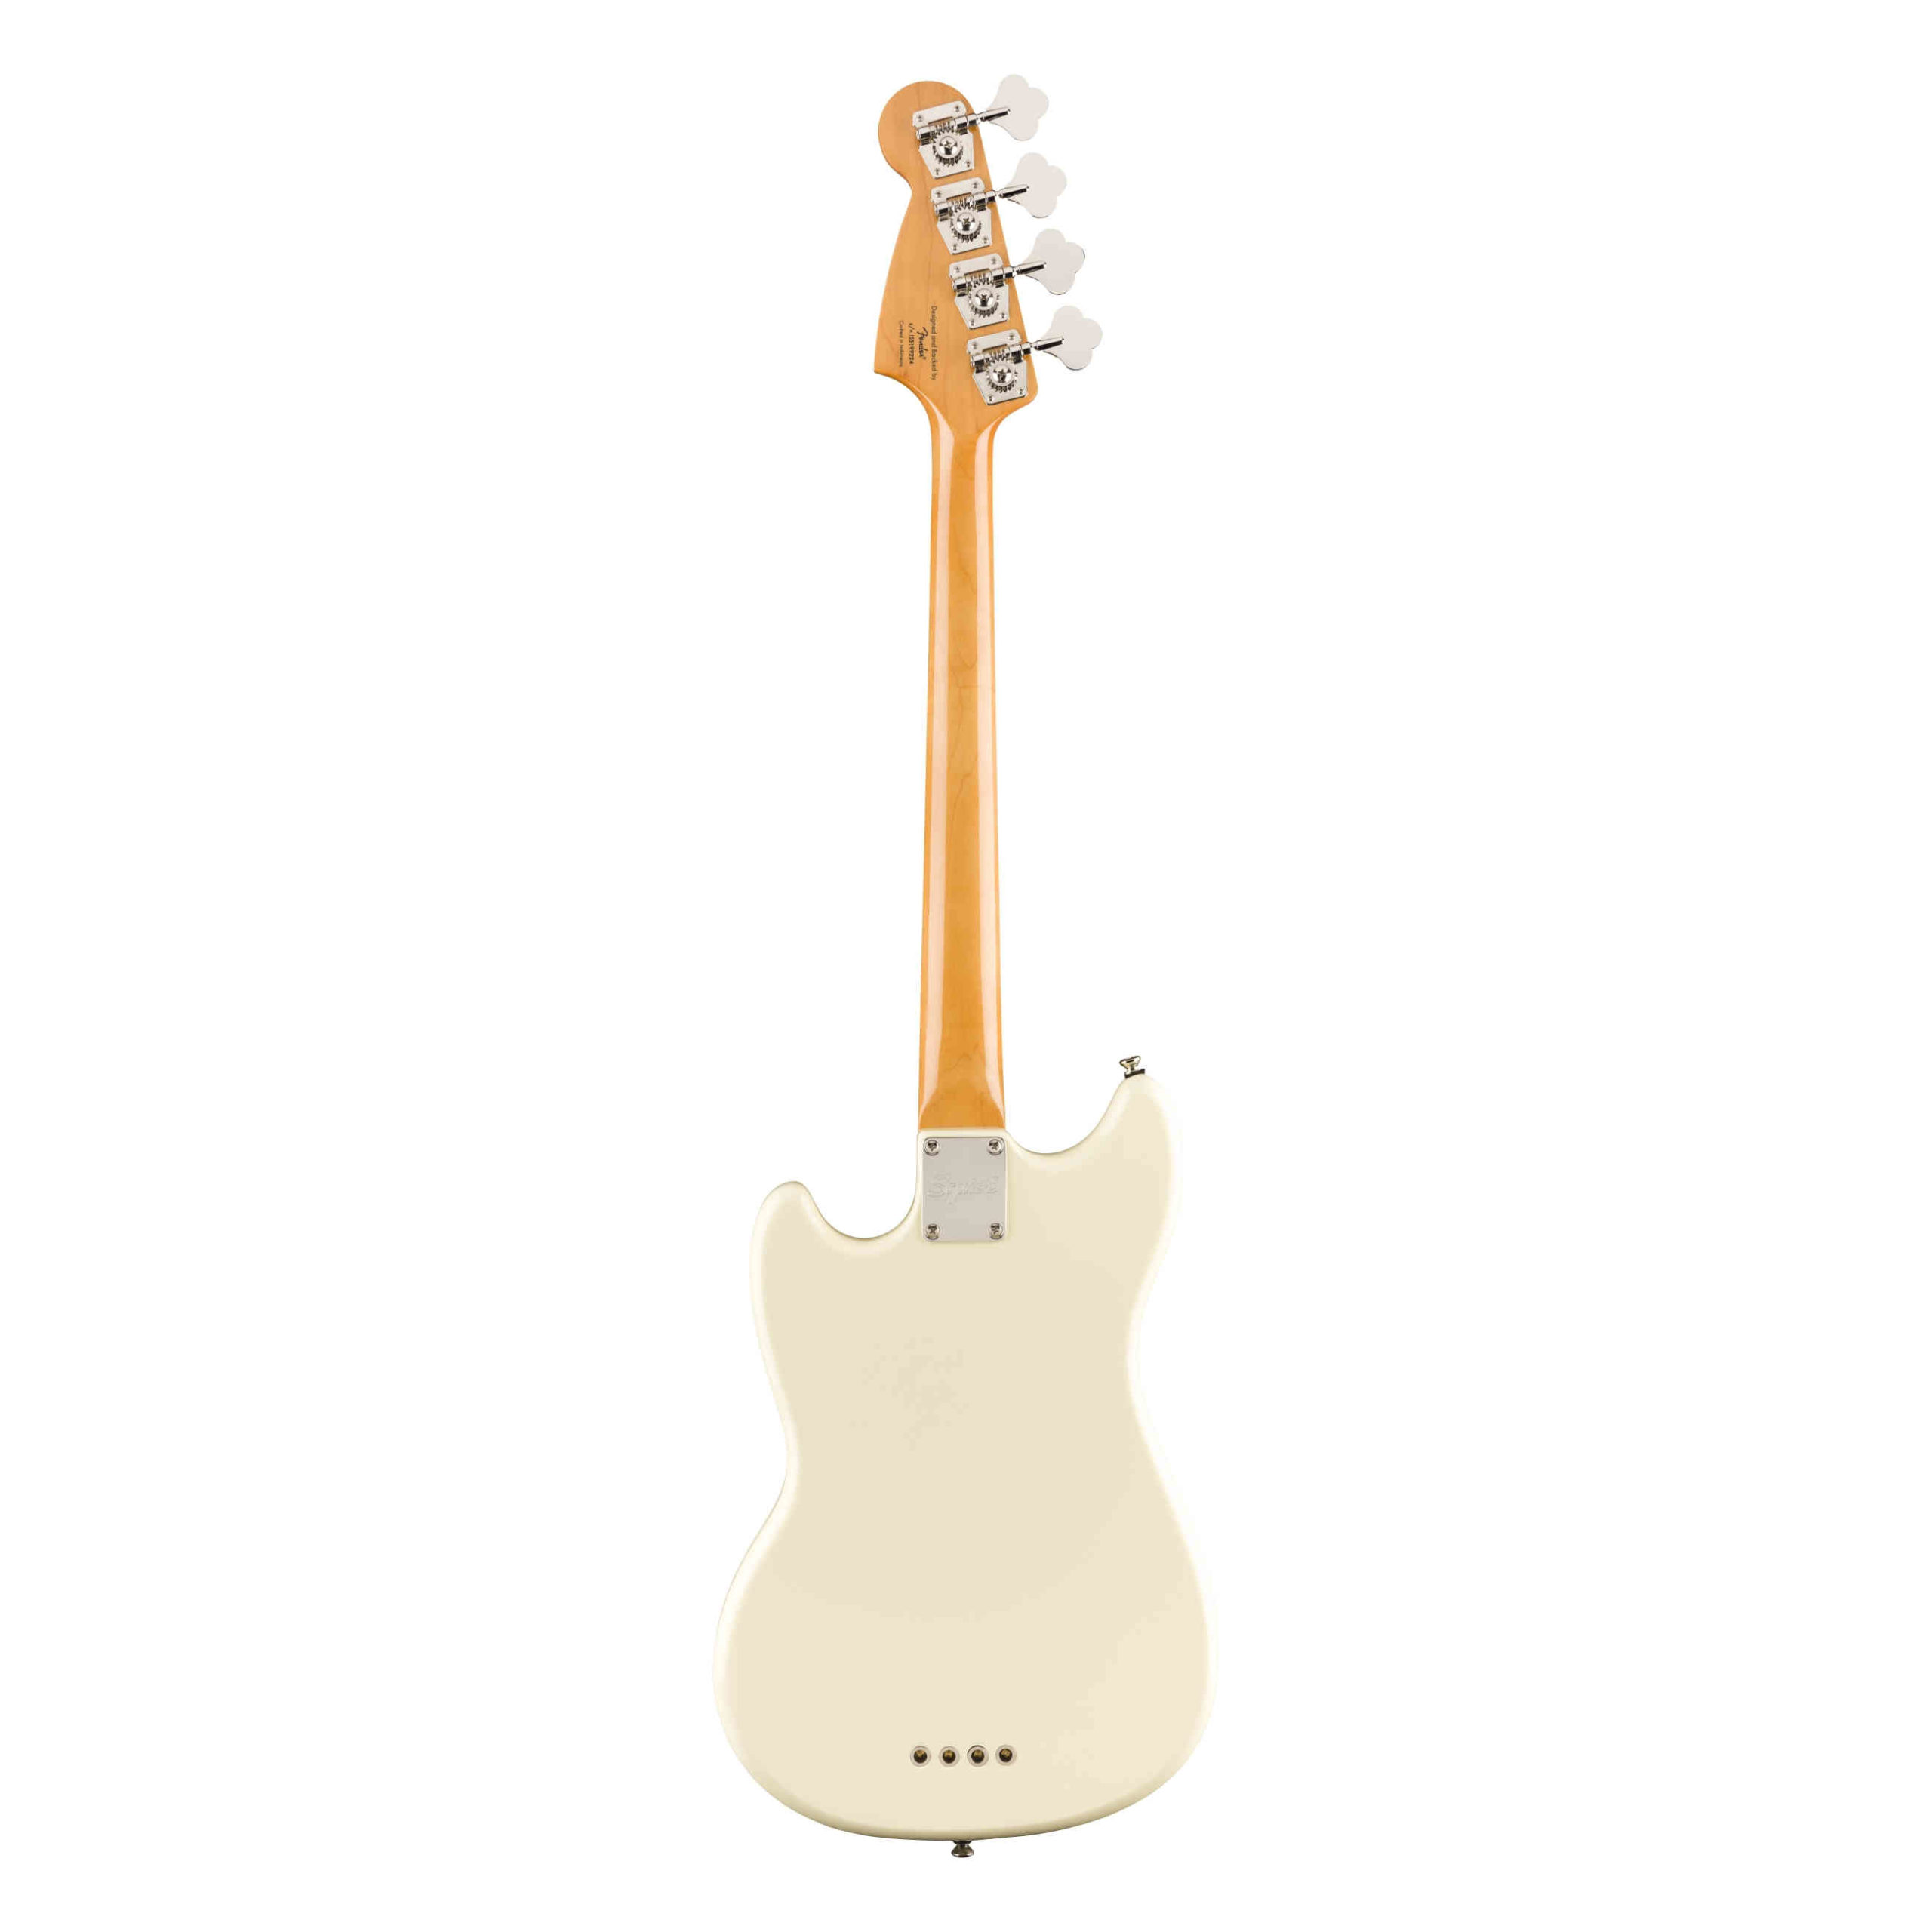 Squier Classic Vibe '60s Mustang® Bass, Indian Laurel Fingerboard, Olympic White